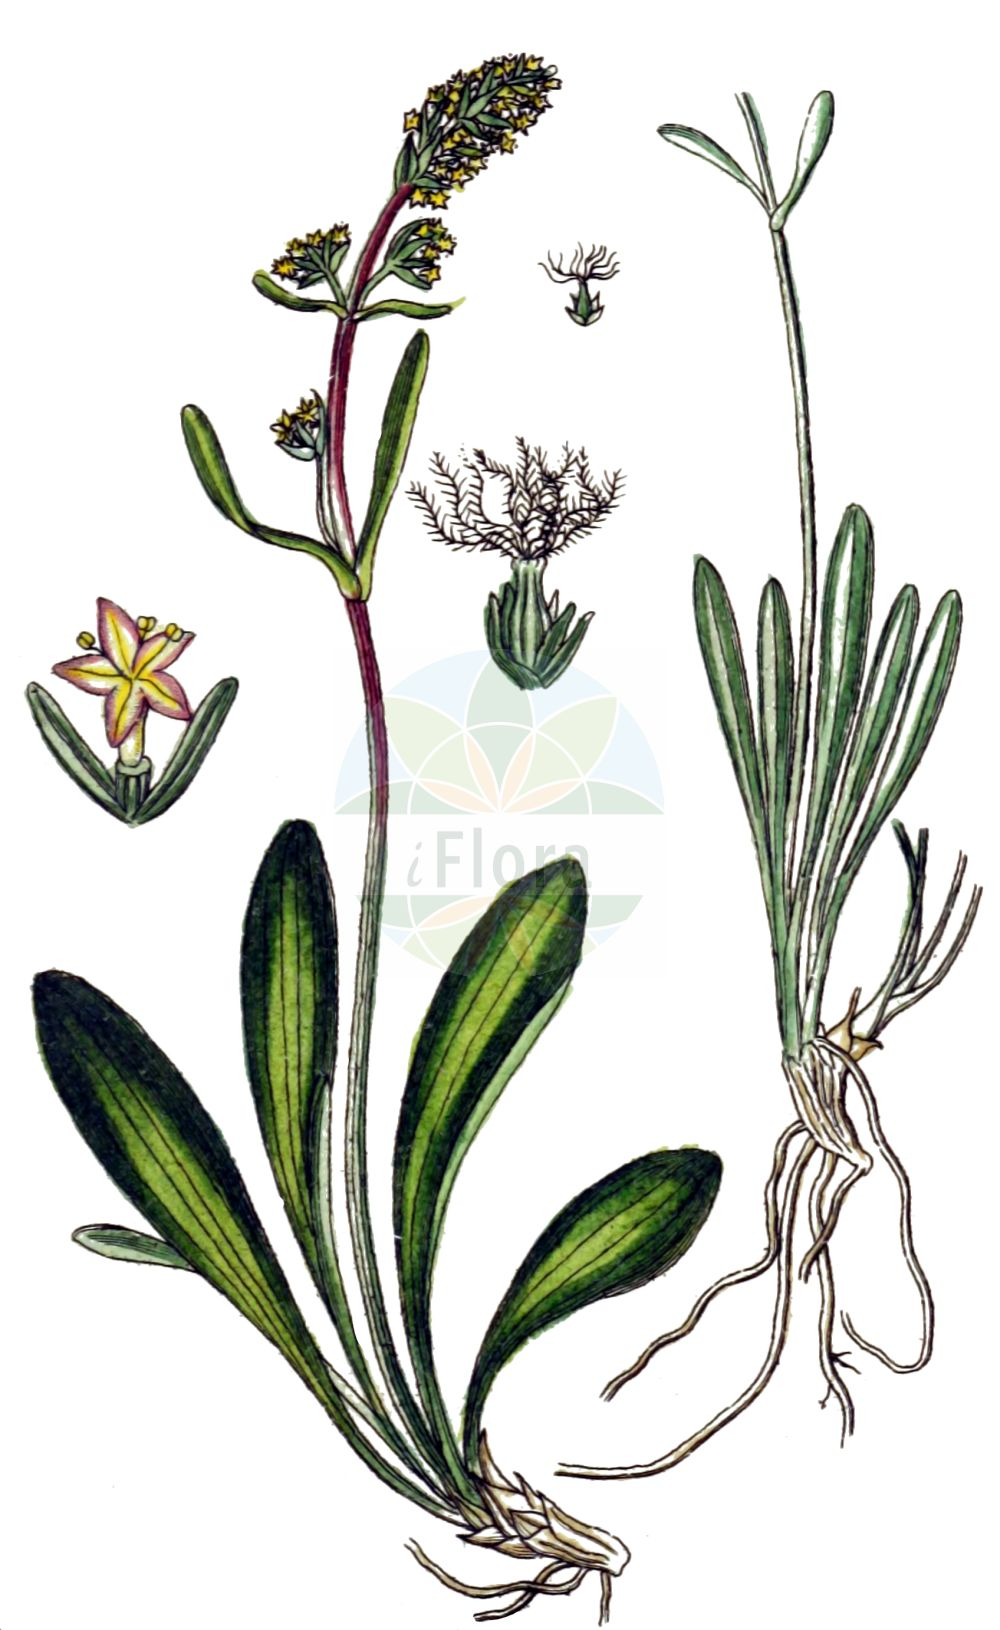 Historische Abbildung von Valeriana celtica. Das Bild zeigt Blatt, Bluete, Frucht und Same. ---- Historical Drawing of Valeriana celtica.The image is showing leaf, flower, fruit and seed.(Valeriana celtica,Valeriana celtica,Valeriana,Baldrian,Valerian,Caprifoliaceae,Geissblattgewaechse,Honeysuckle family,Blatt,Bluete,Frucht,Same,leaf,flower,fruit,seed,Sturm (1796f))